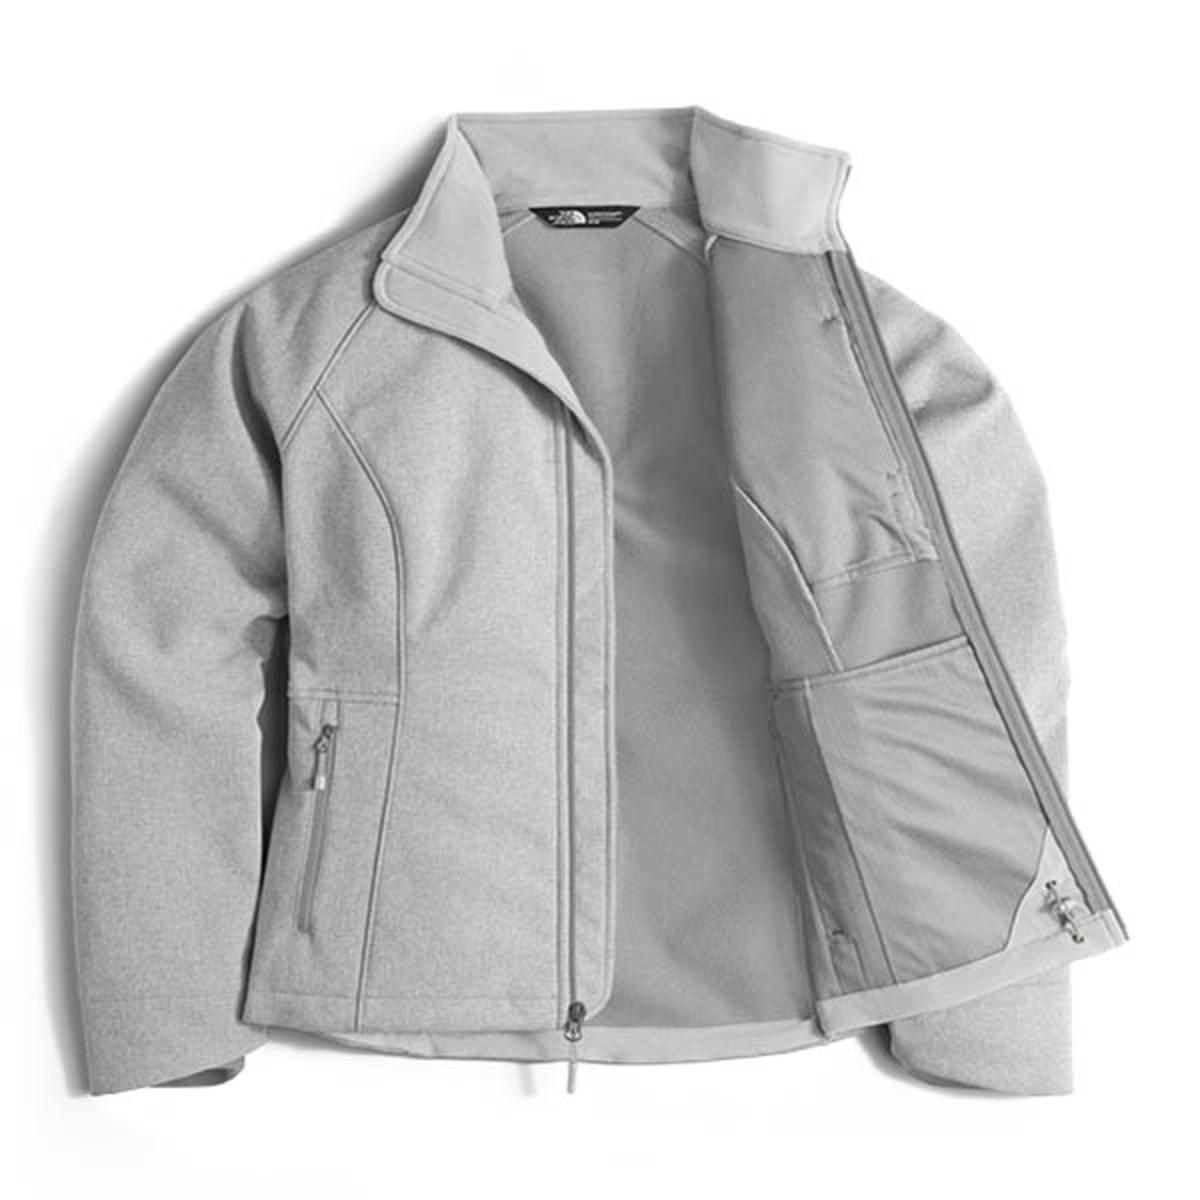 493b9a367 The North Face Women's Apex Bionic 2 Jacket - Light Grey Heather/Mid ...